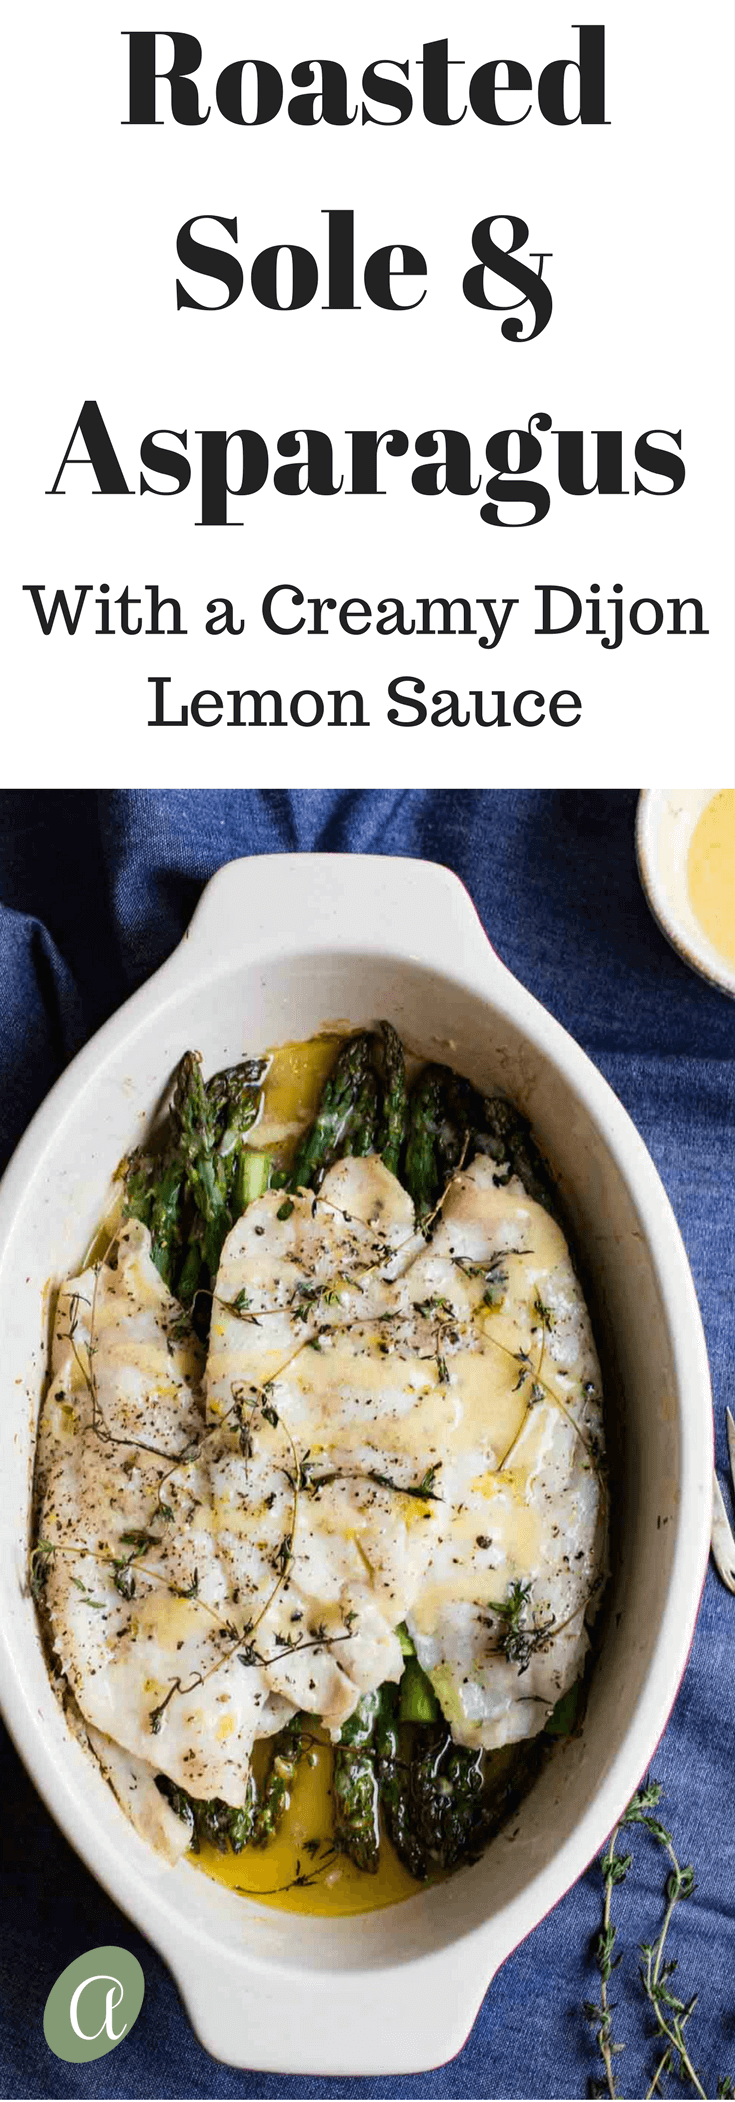 Perfectly roasted lemon thyme sole with crisp-tender asparagus and a creamy lemon dijon sauce. This is a no muss, no fuss, fish dish that you will want to make over and over again. Gluten free, paleo, whole 30